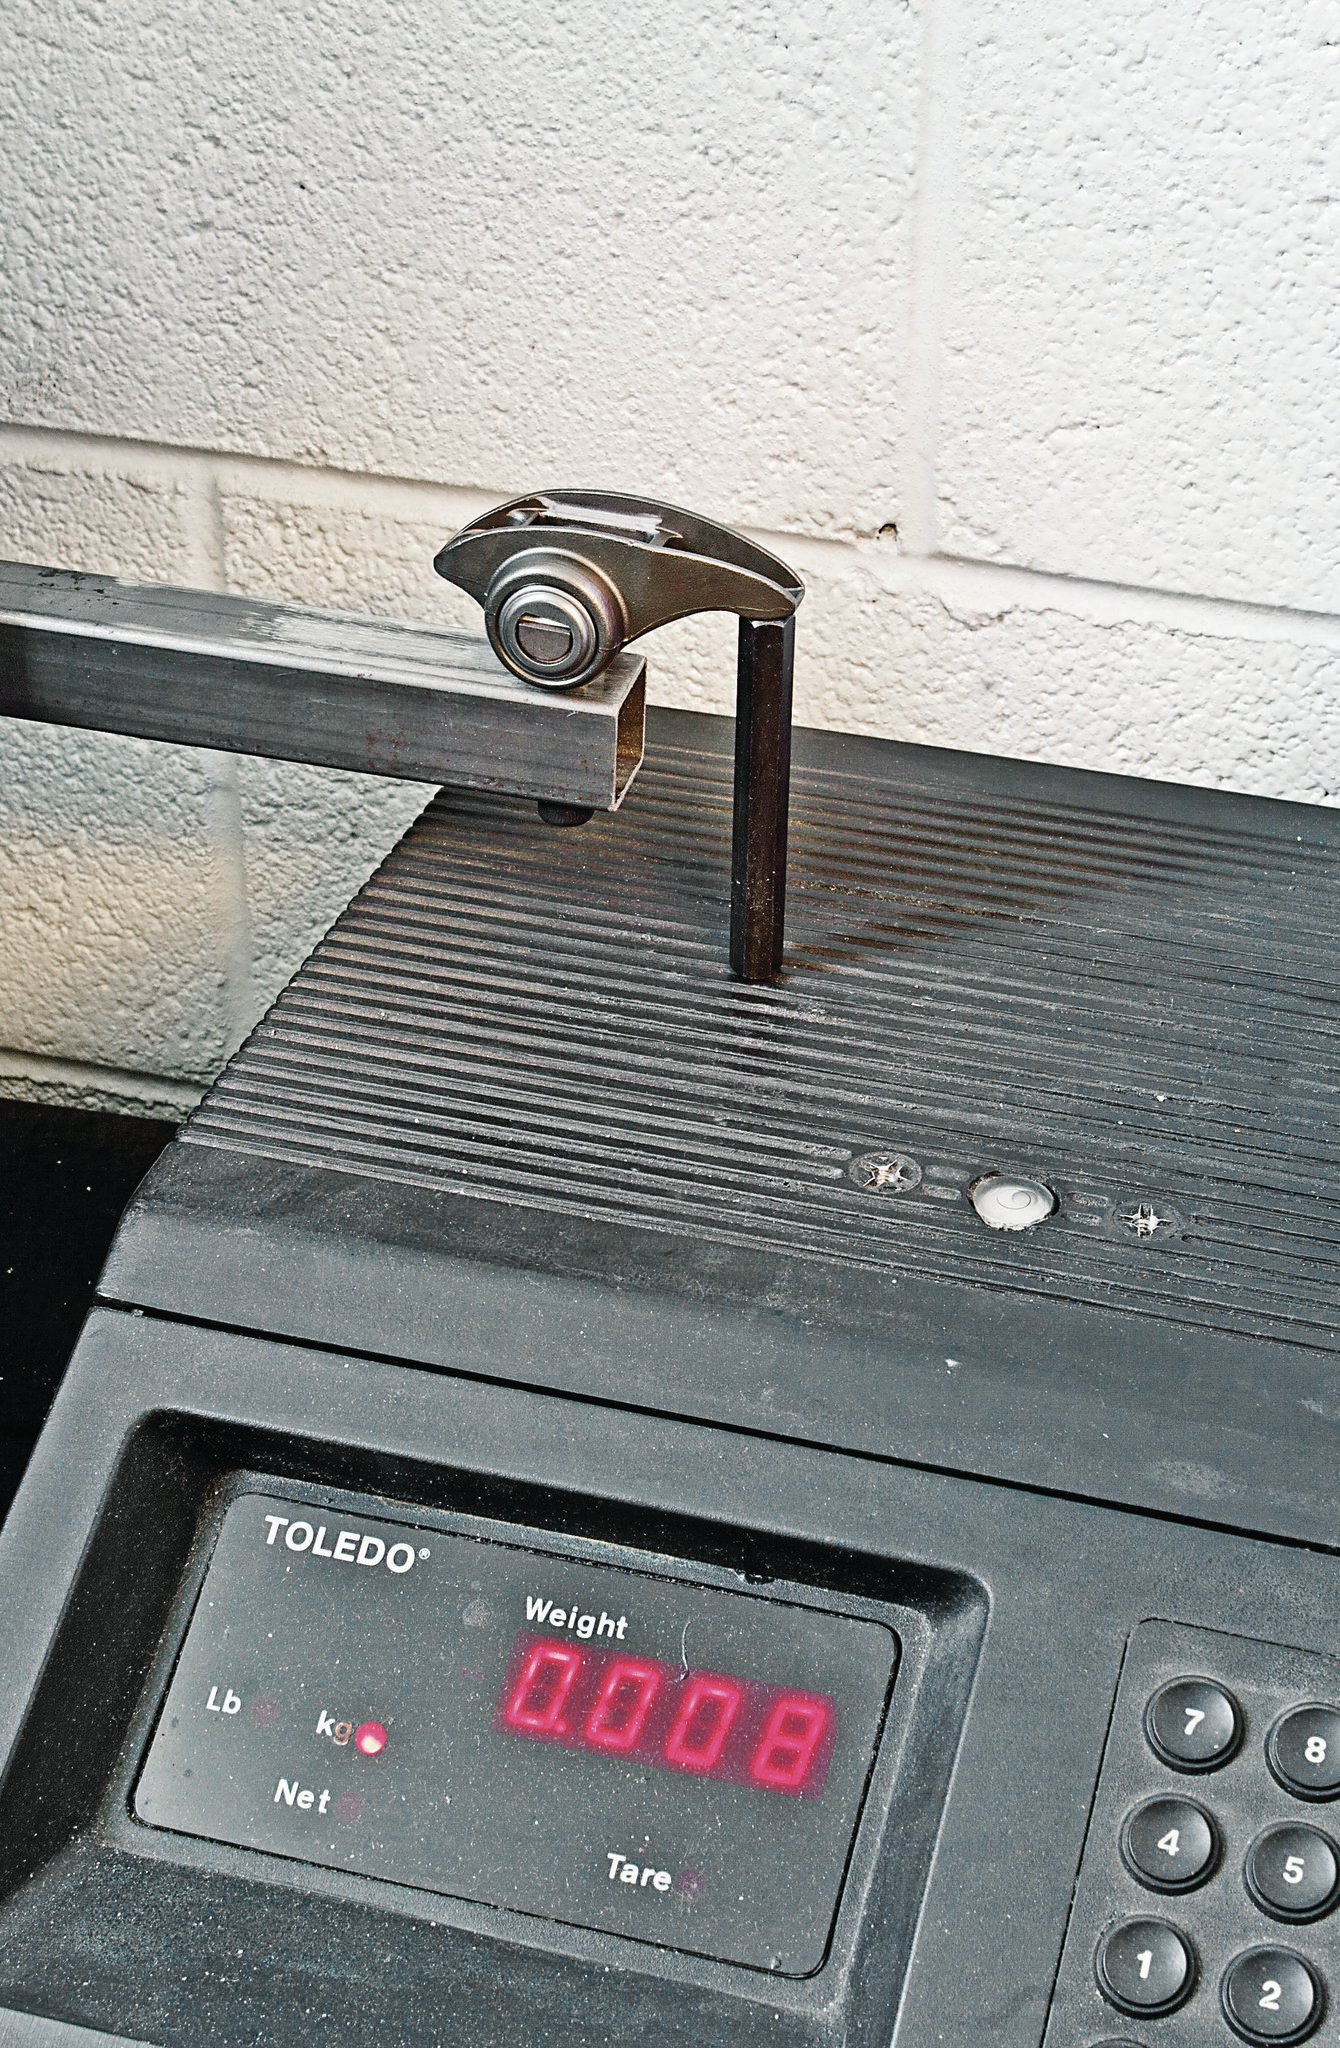 Weighing each shows the LS7 rocker to be 0.009kg (0.317oz) lighter over the tip.